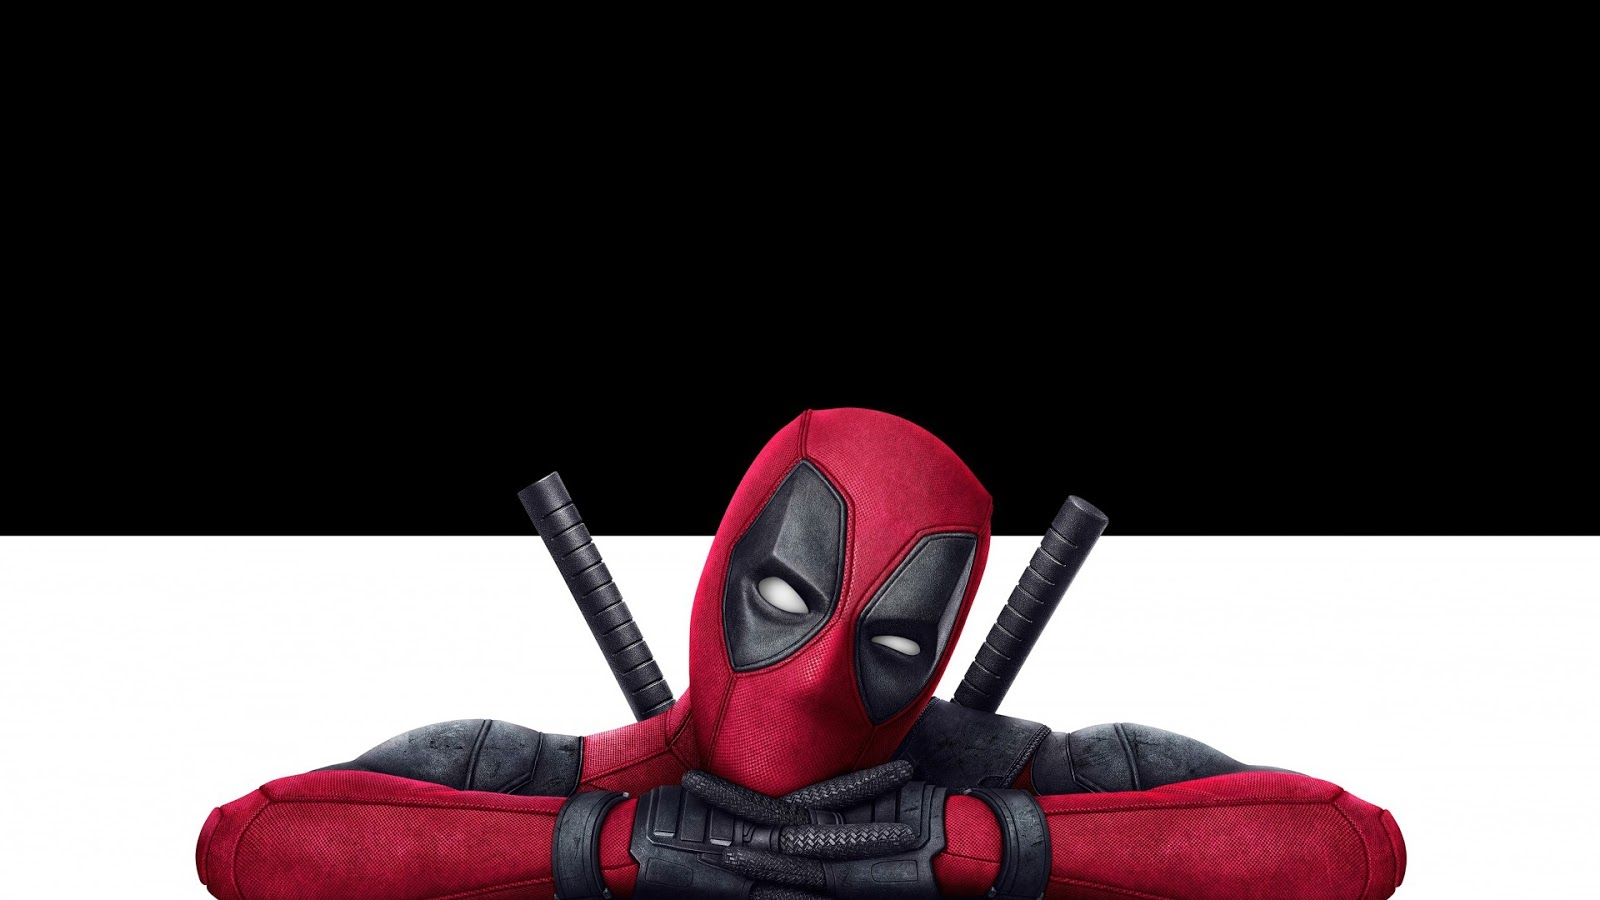 Download Free HD Wallpapers of Deadpool Movie(2016) ~ Download Free HD Wallpapers Collection